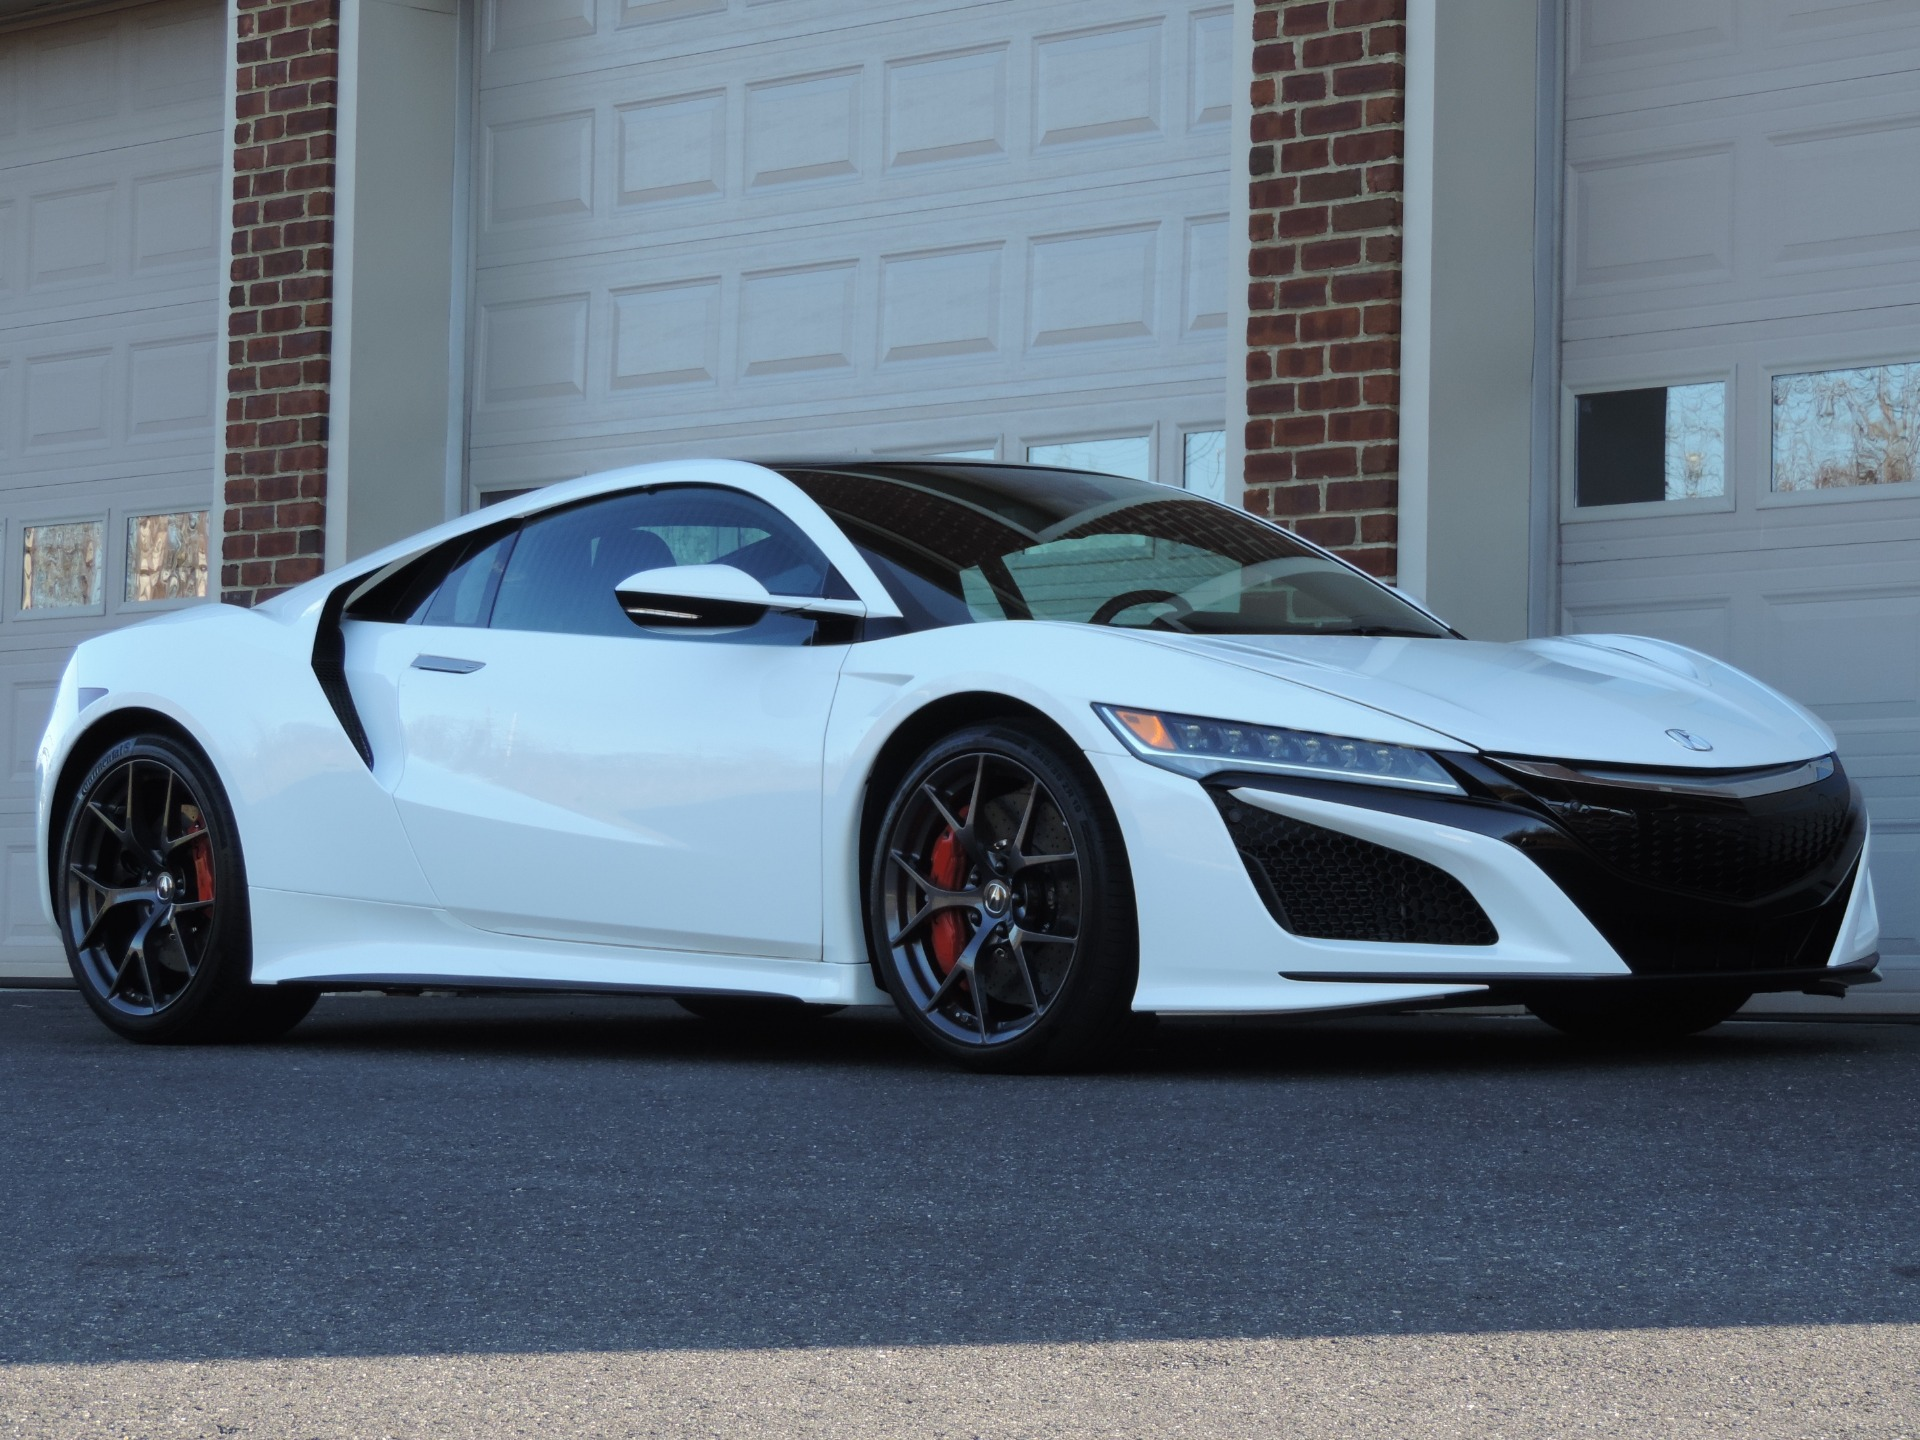 acura new sportcar used cars canada in pin for supercar sport sale nsx pinterest